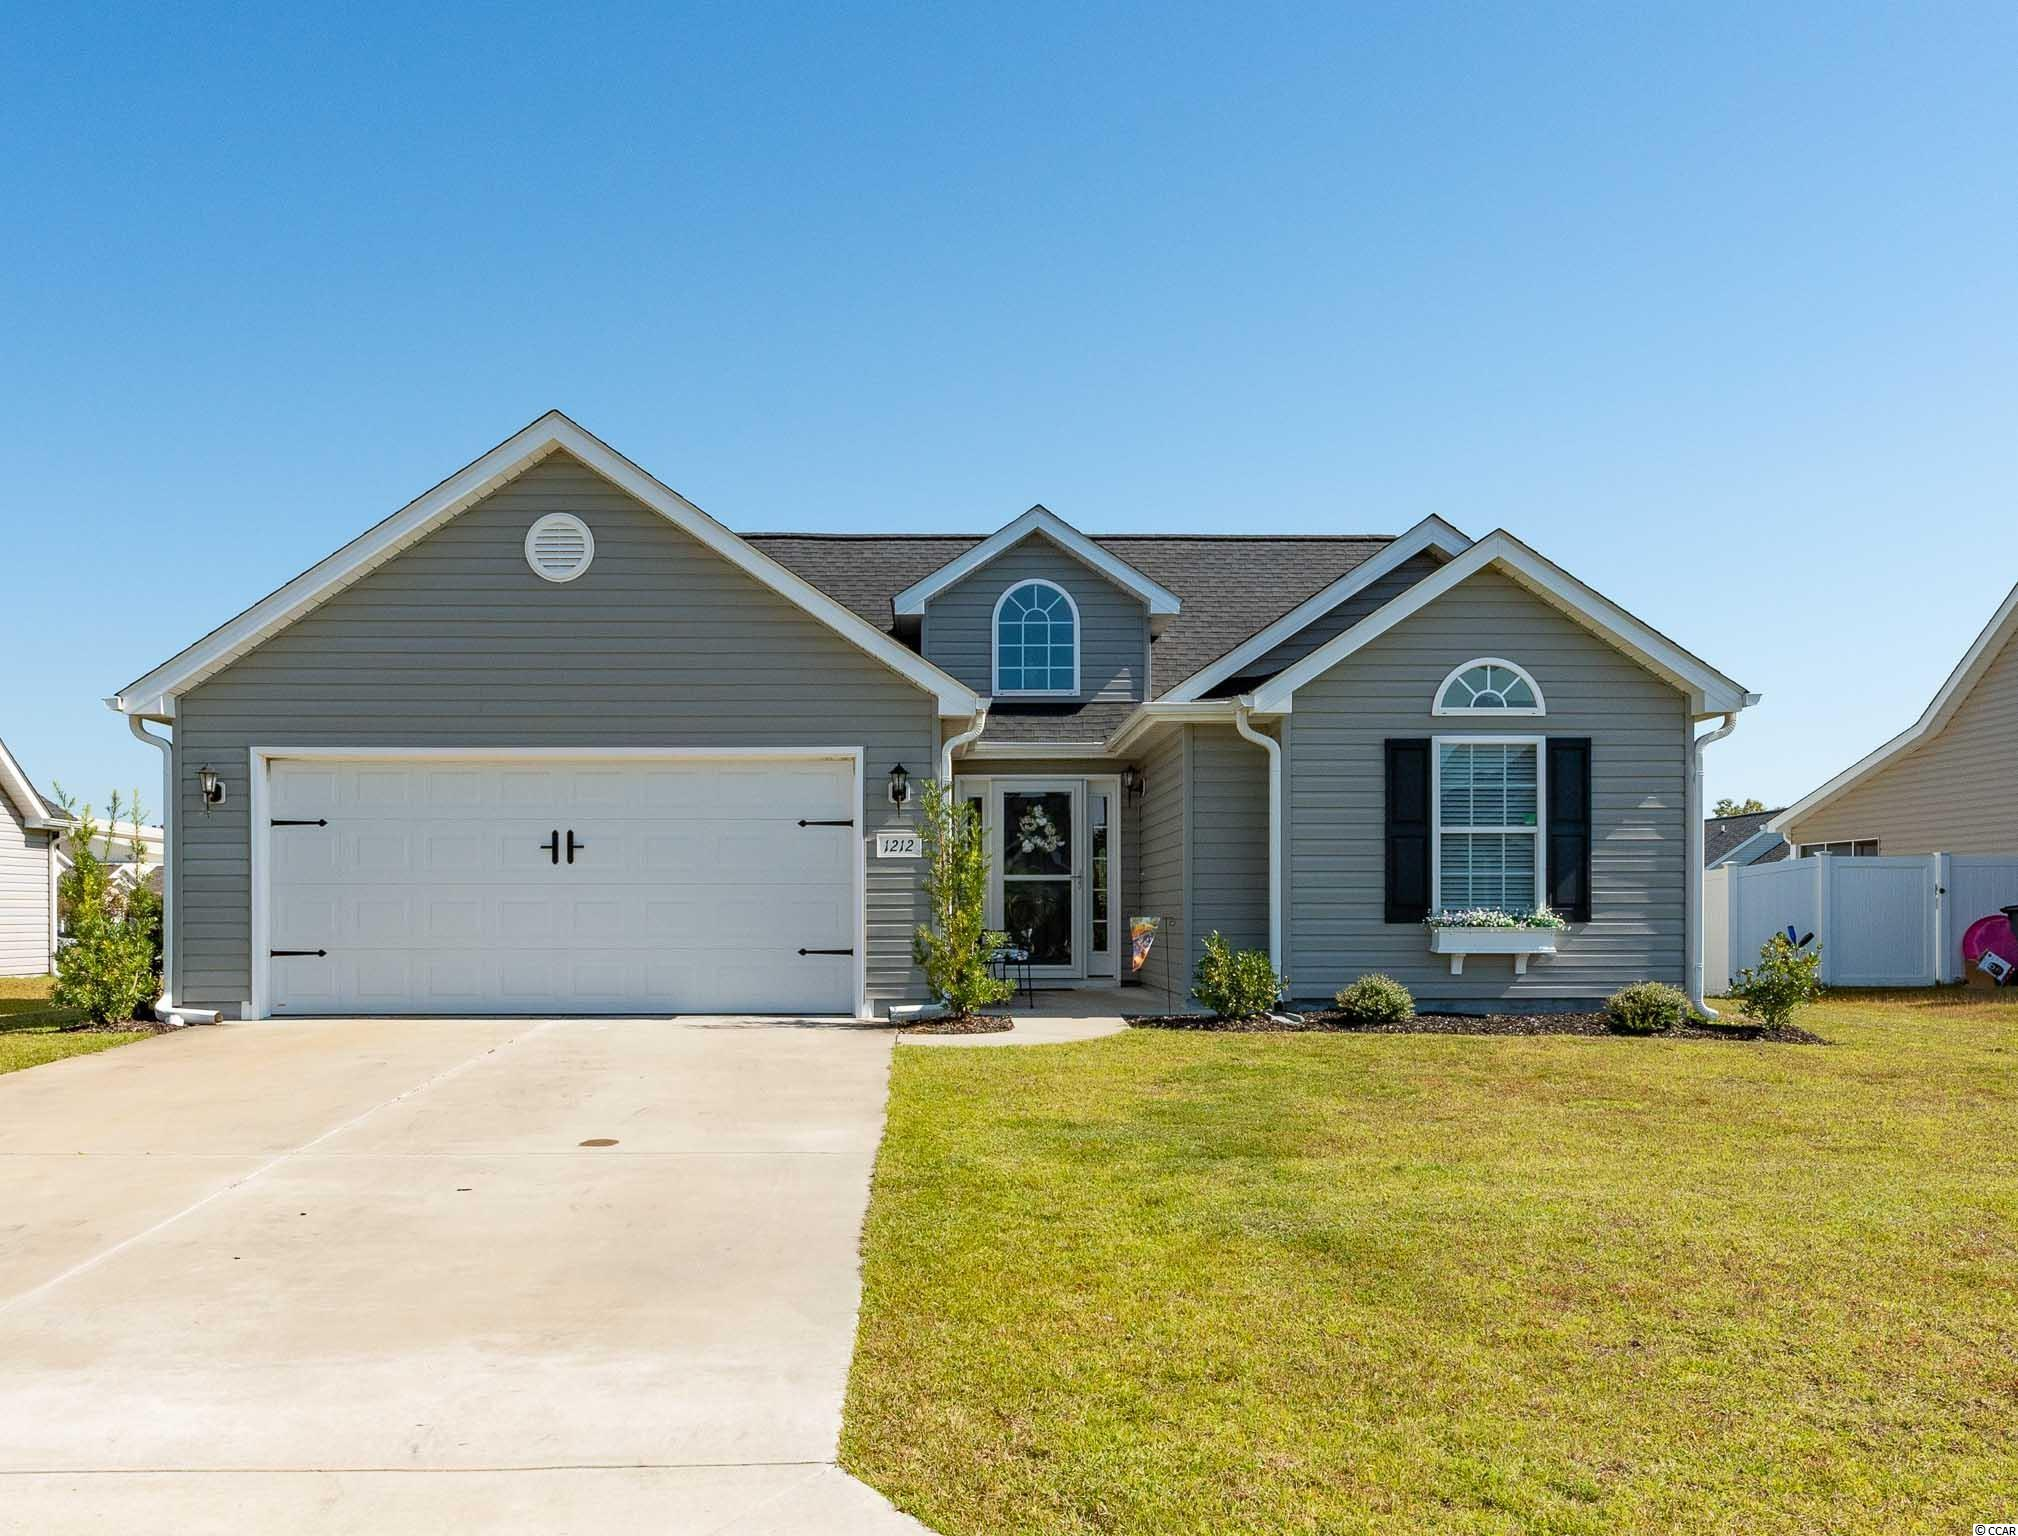 Welcome To Surfside Beach!  This Beautiful 3 Bedroom, 2 Bath Ranch Is LIKE NEW!  When You Enter You Will Find A Beautiful Entry with Vaulted Ceiling Opening To The Great Room, Kitchen and Dining Area.  Soaring Vaulted Ceilings & Tray Ceiling in Master Bedroom Make The Space Feel Open & Airy.  Split Bedroom Plan.  Vinyl Flooring Throughout, NO CARPET!  The Slider Door Leads to Back Patio With Gazebo, A Great Place To Sit & Enjoy The Coastal Carolina Weather.  Home Located On Cul-De-Sac. Mallard Landing Park is A Low HOA Community Within a Short Golf Cart Ride to the Beach and Close to Hwy. 17 Bypass & Business for Easy Access to Shops, Restaurants and the Airport. Measurements & Sq. Footage Approximate. and Not Guaranteed.